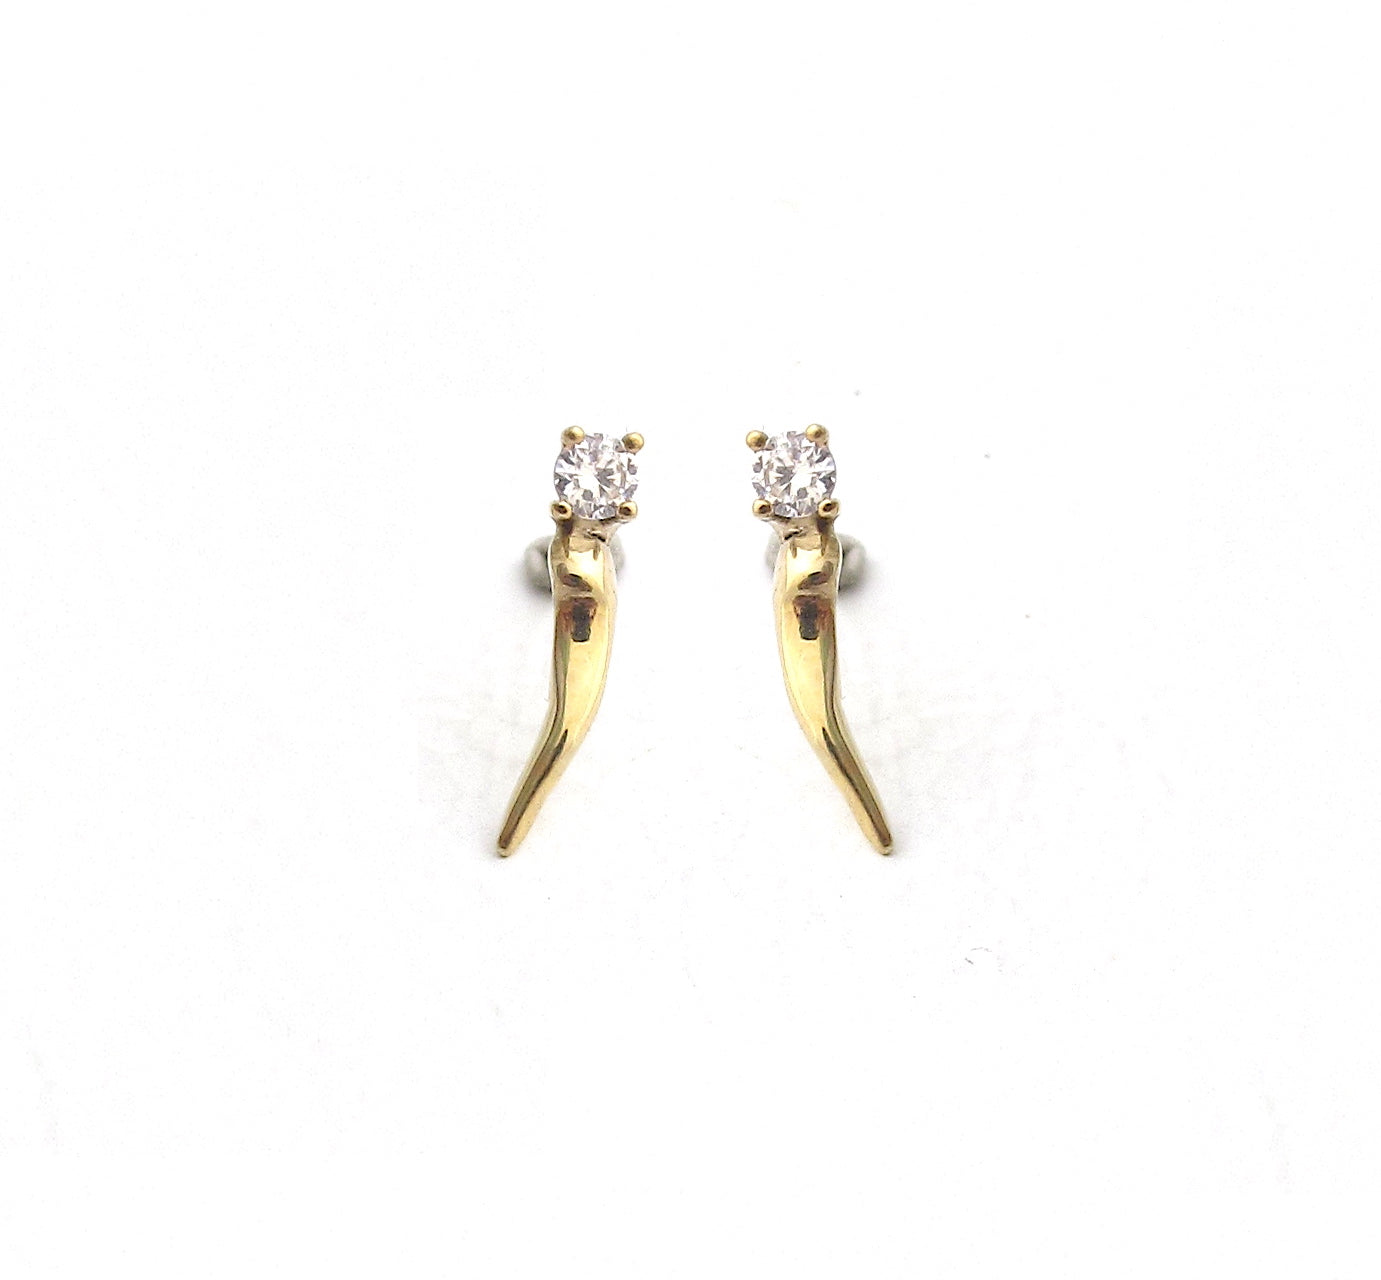 Thorn diamond stud earrings